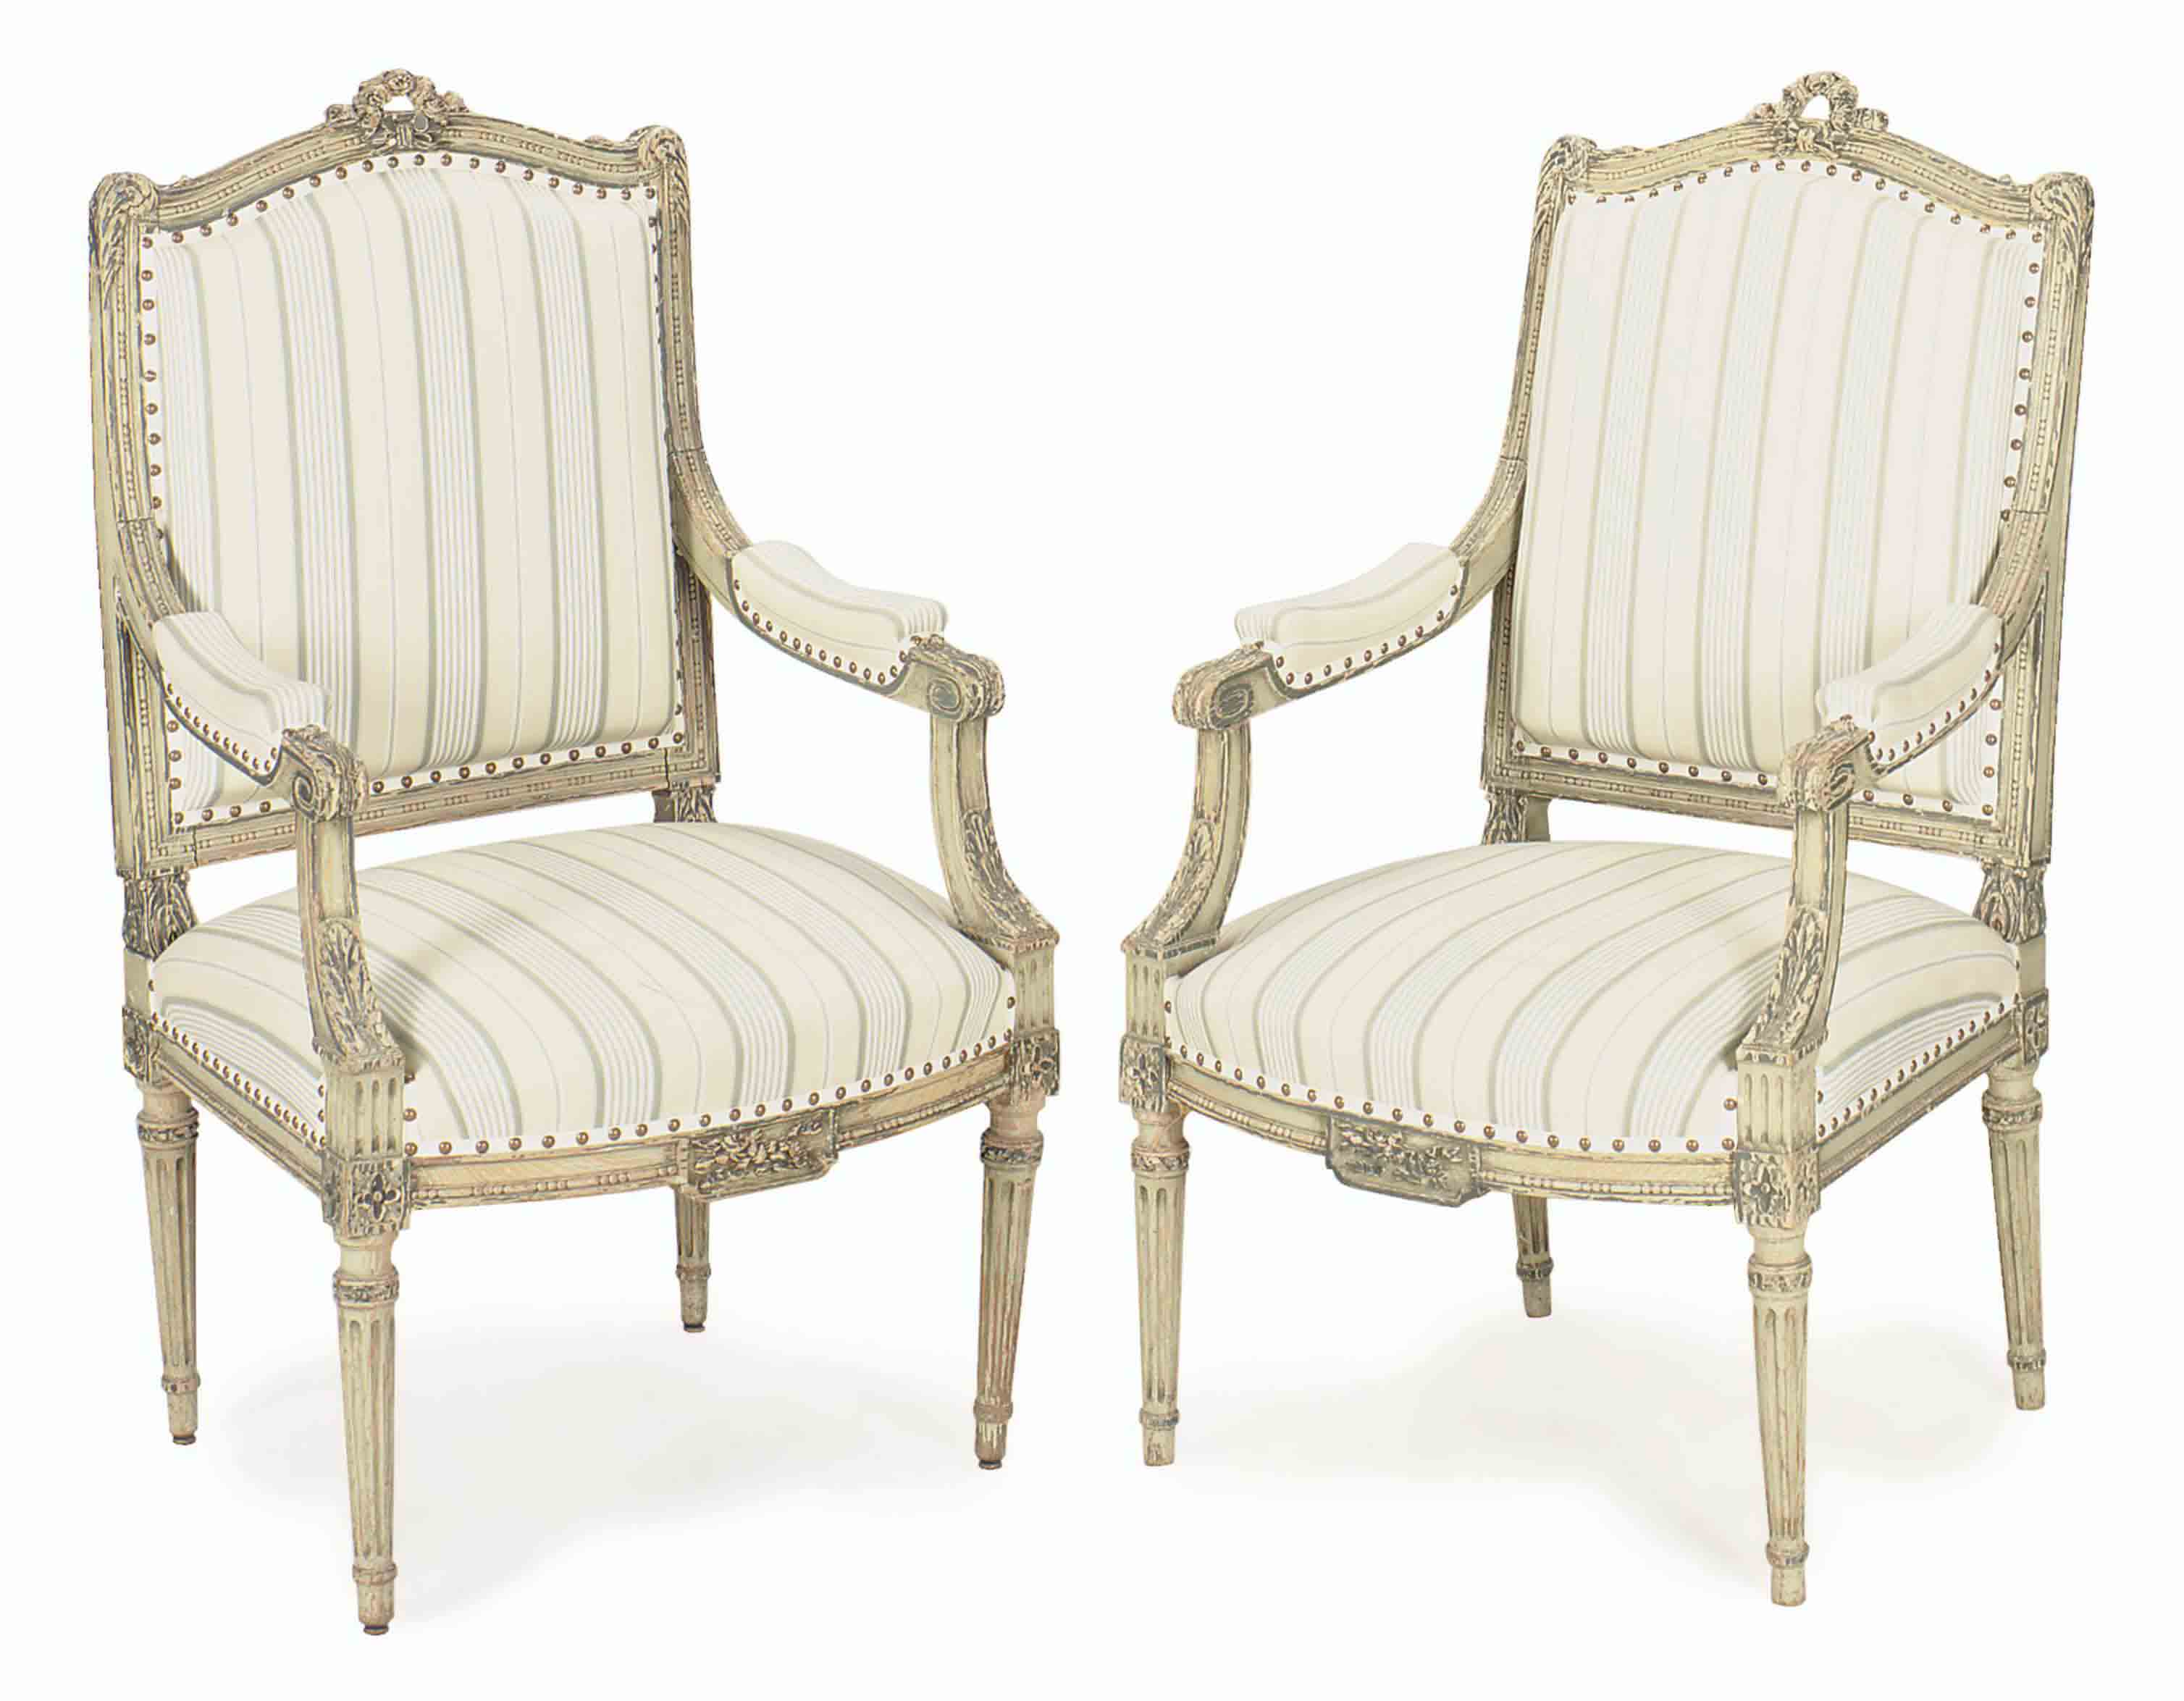 A PAIR OF FRENCH BLUE AND WHITE PAINTED FAUTEUILS,